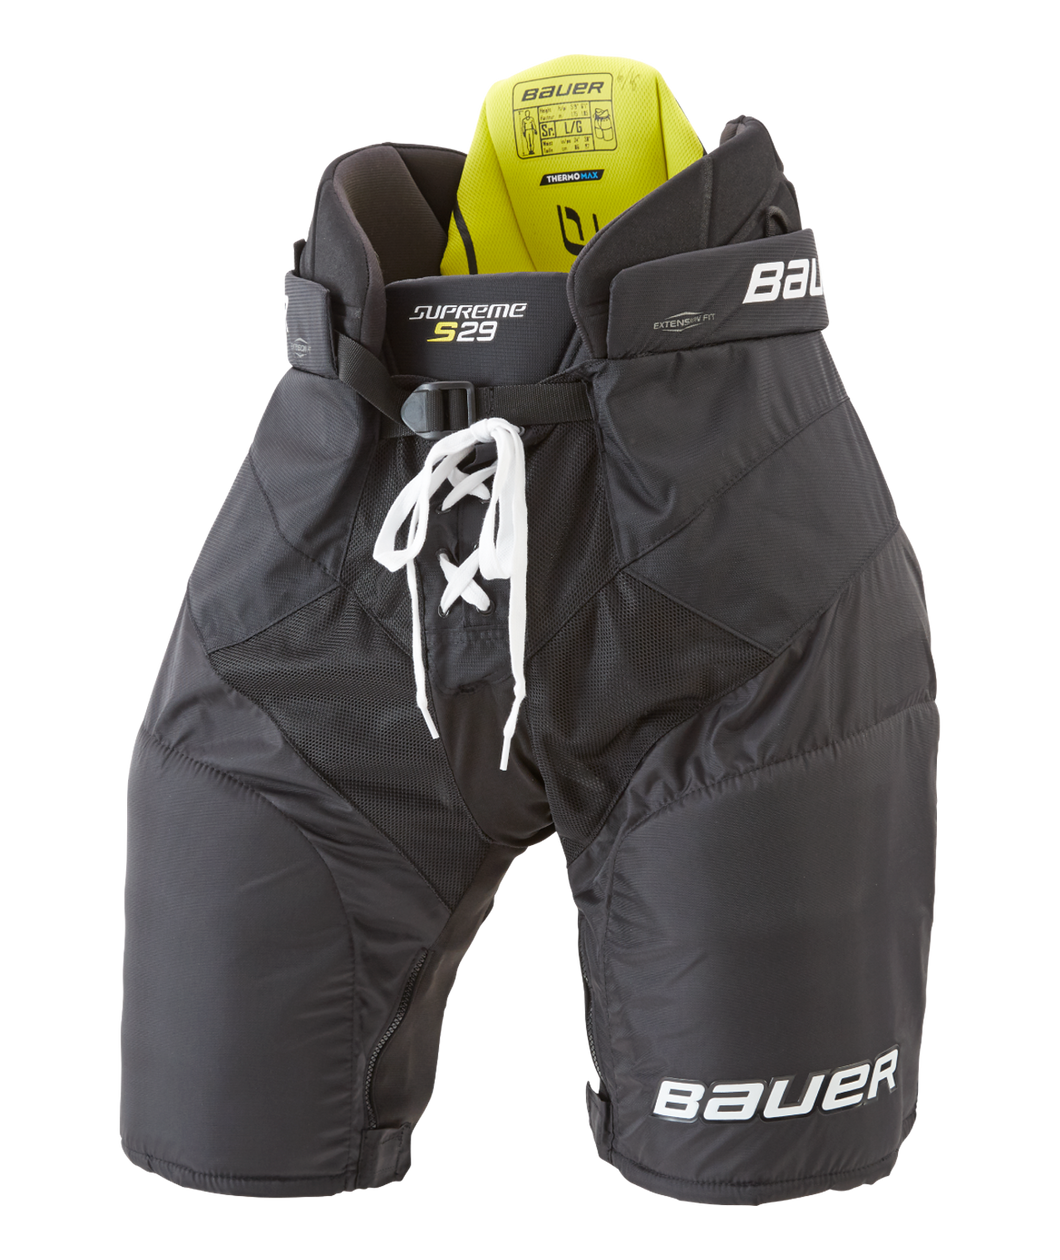 BAUER S19 SUPREME S29 SENIOR HOCKEY PANT